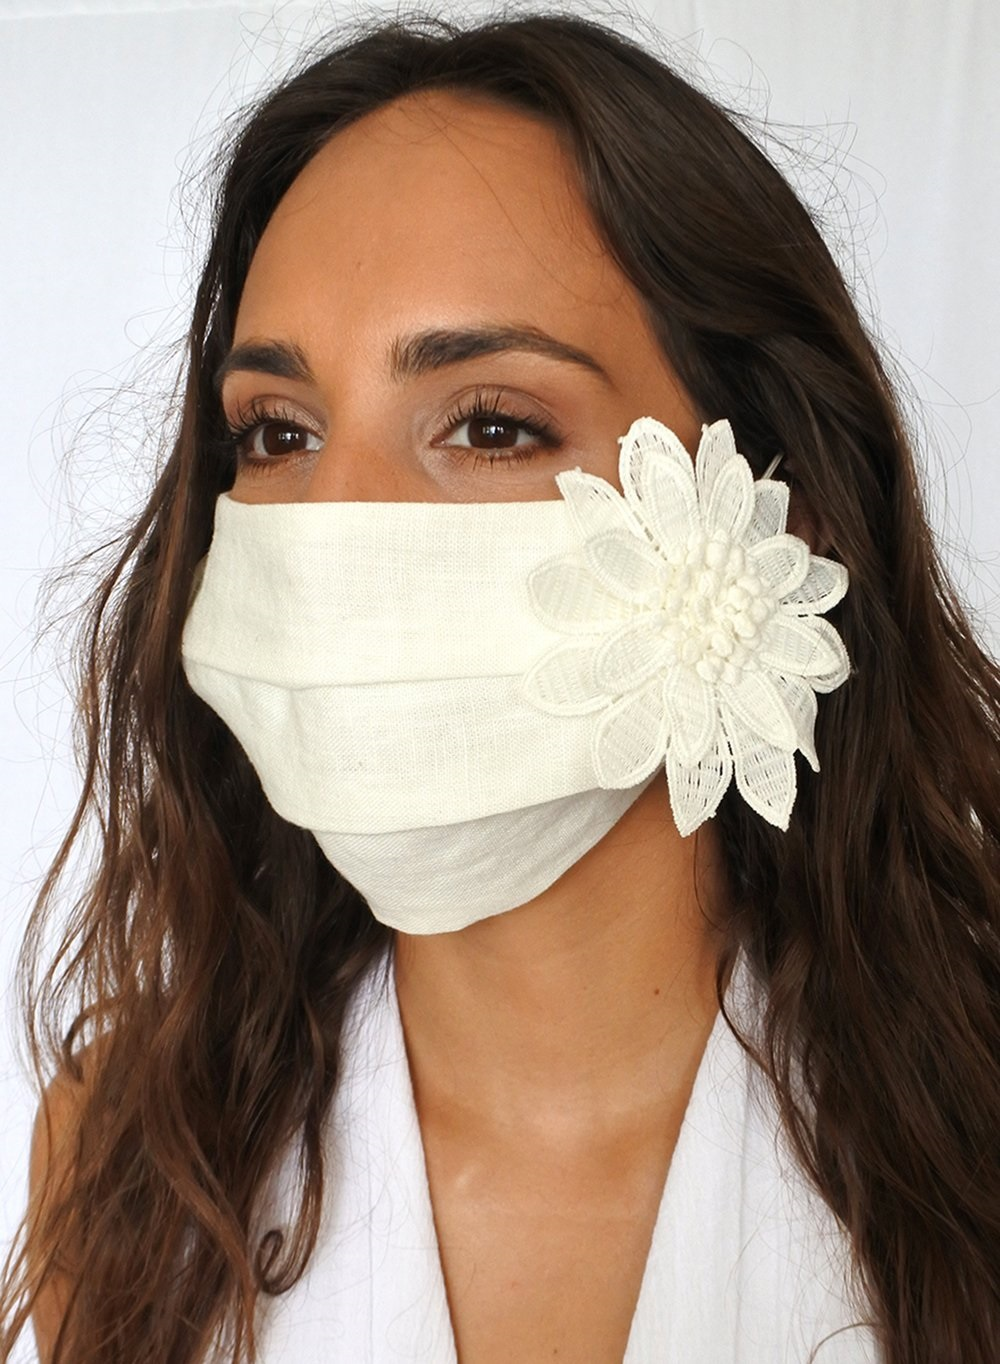 Masked In Style...Trendy Face Masks to Wear, women's face masks, white linen with flower face mask